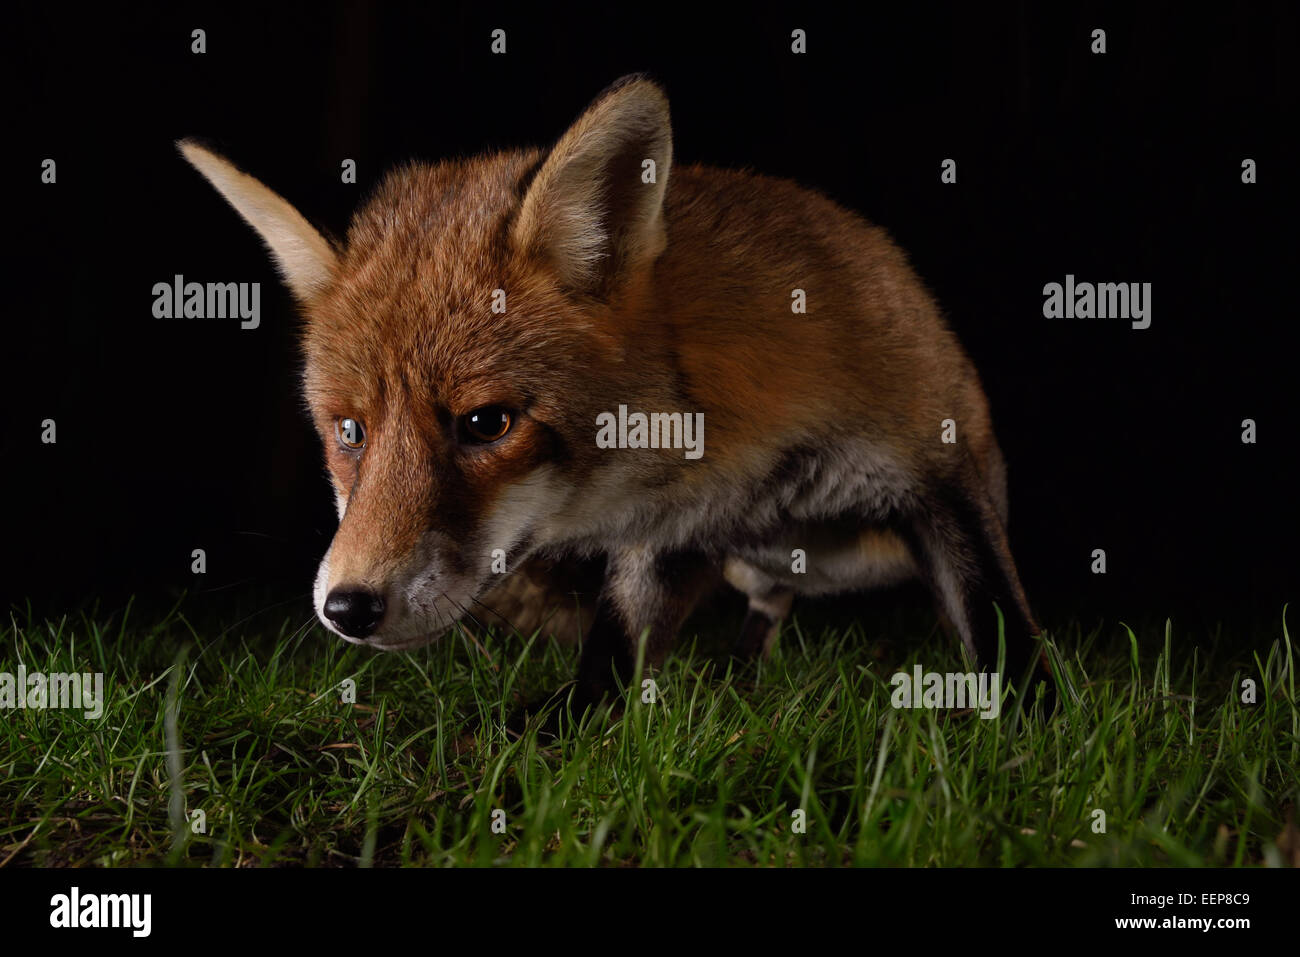 Urban Fox close up at night - Stock Image